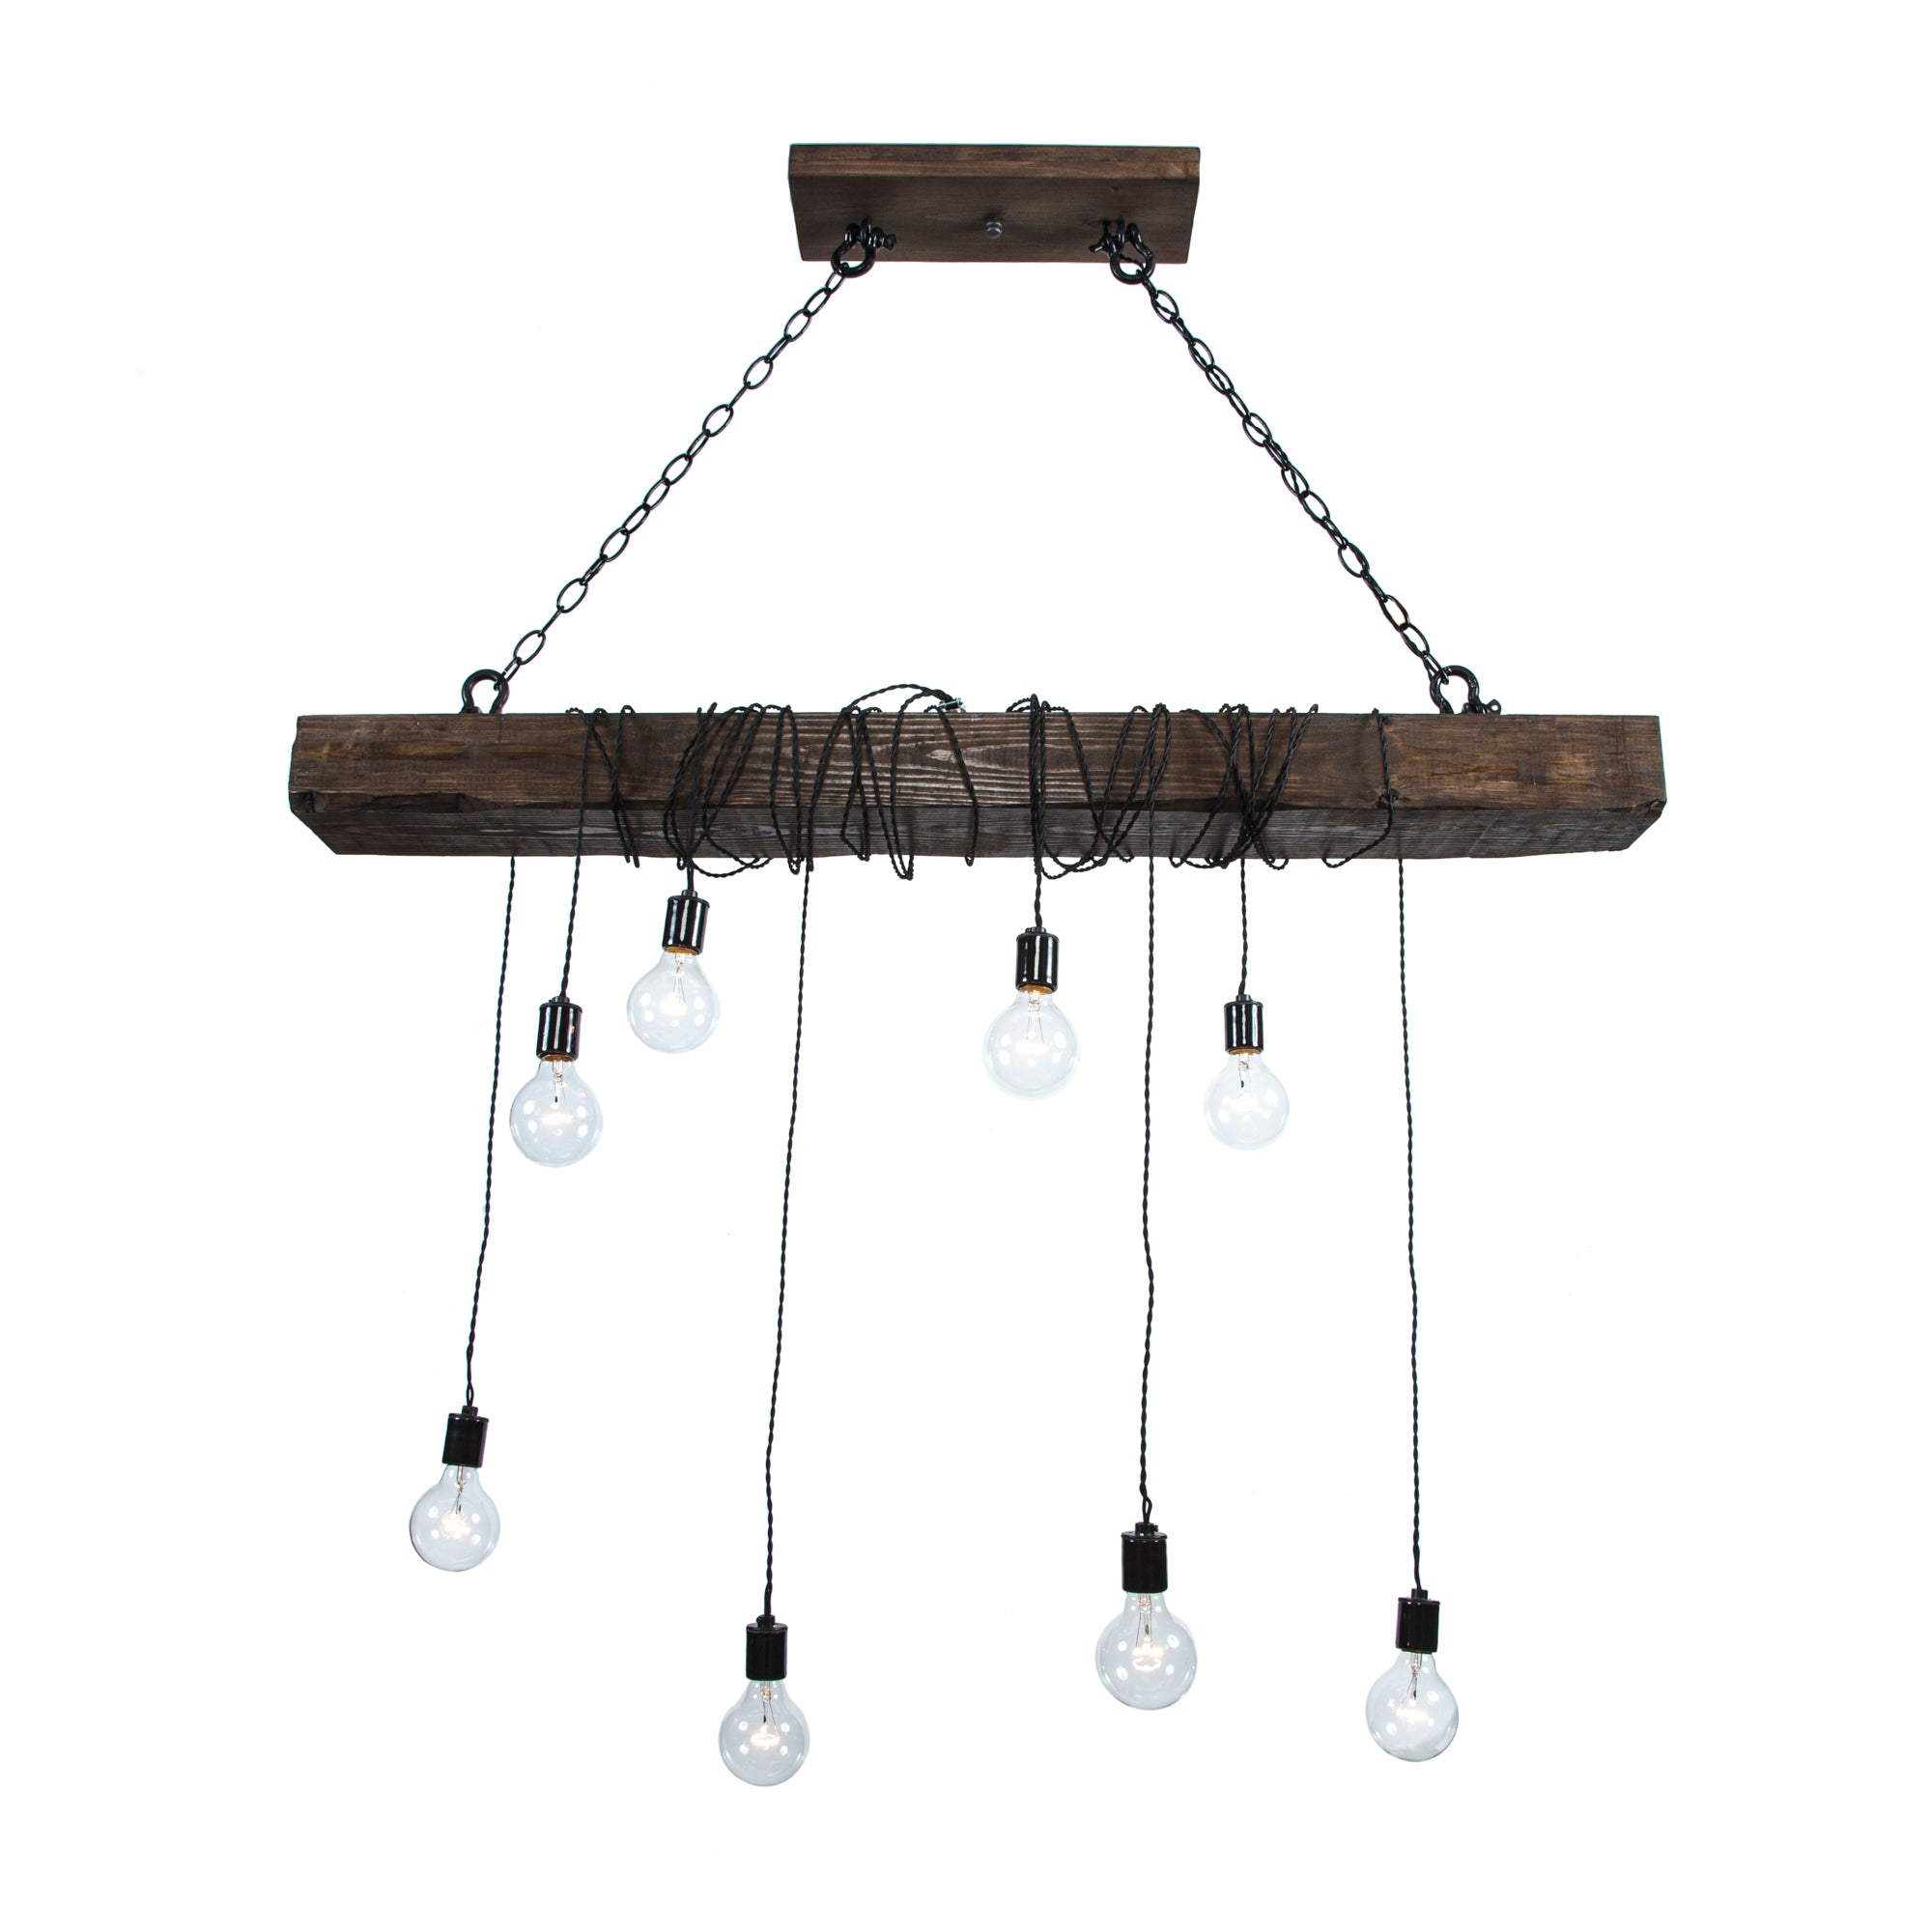 Pendant Wood Beam Chandelier with Chains